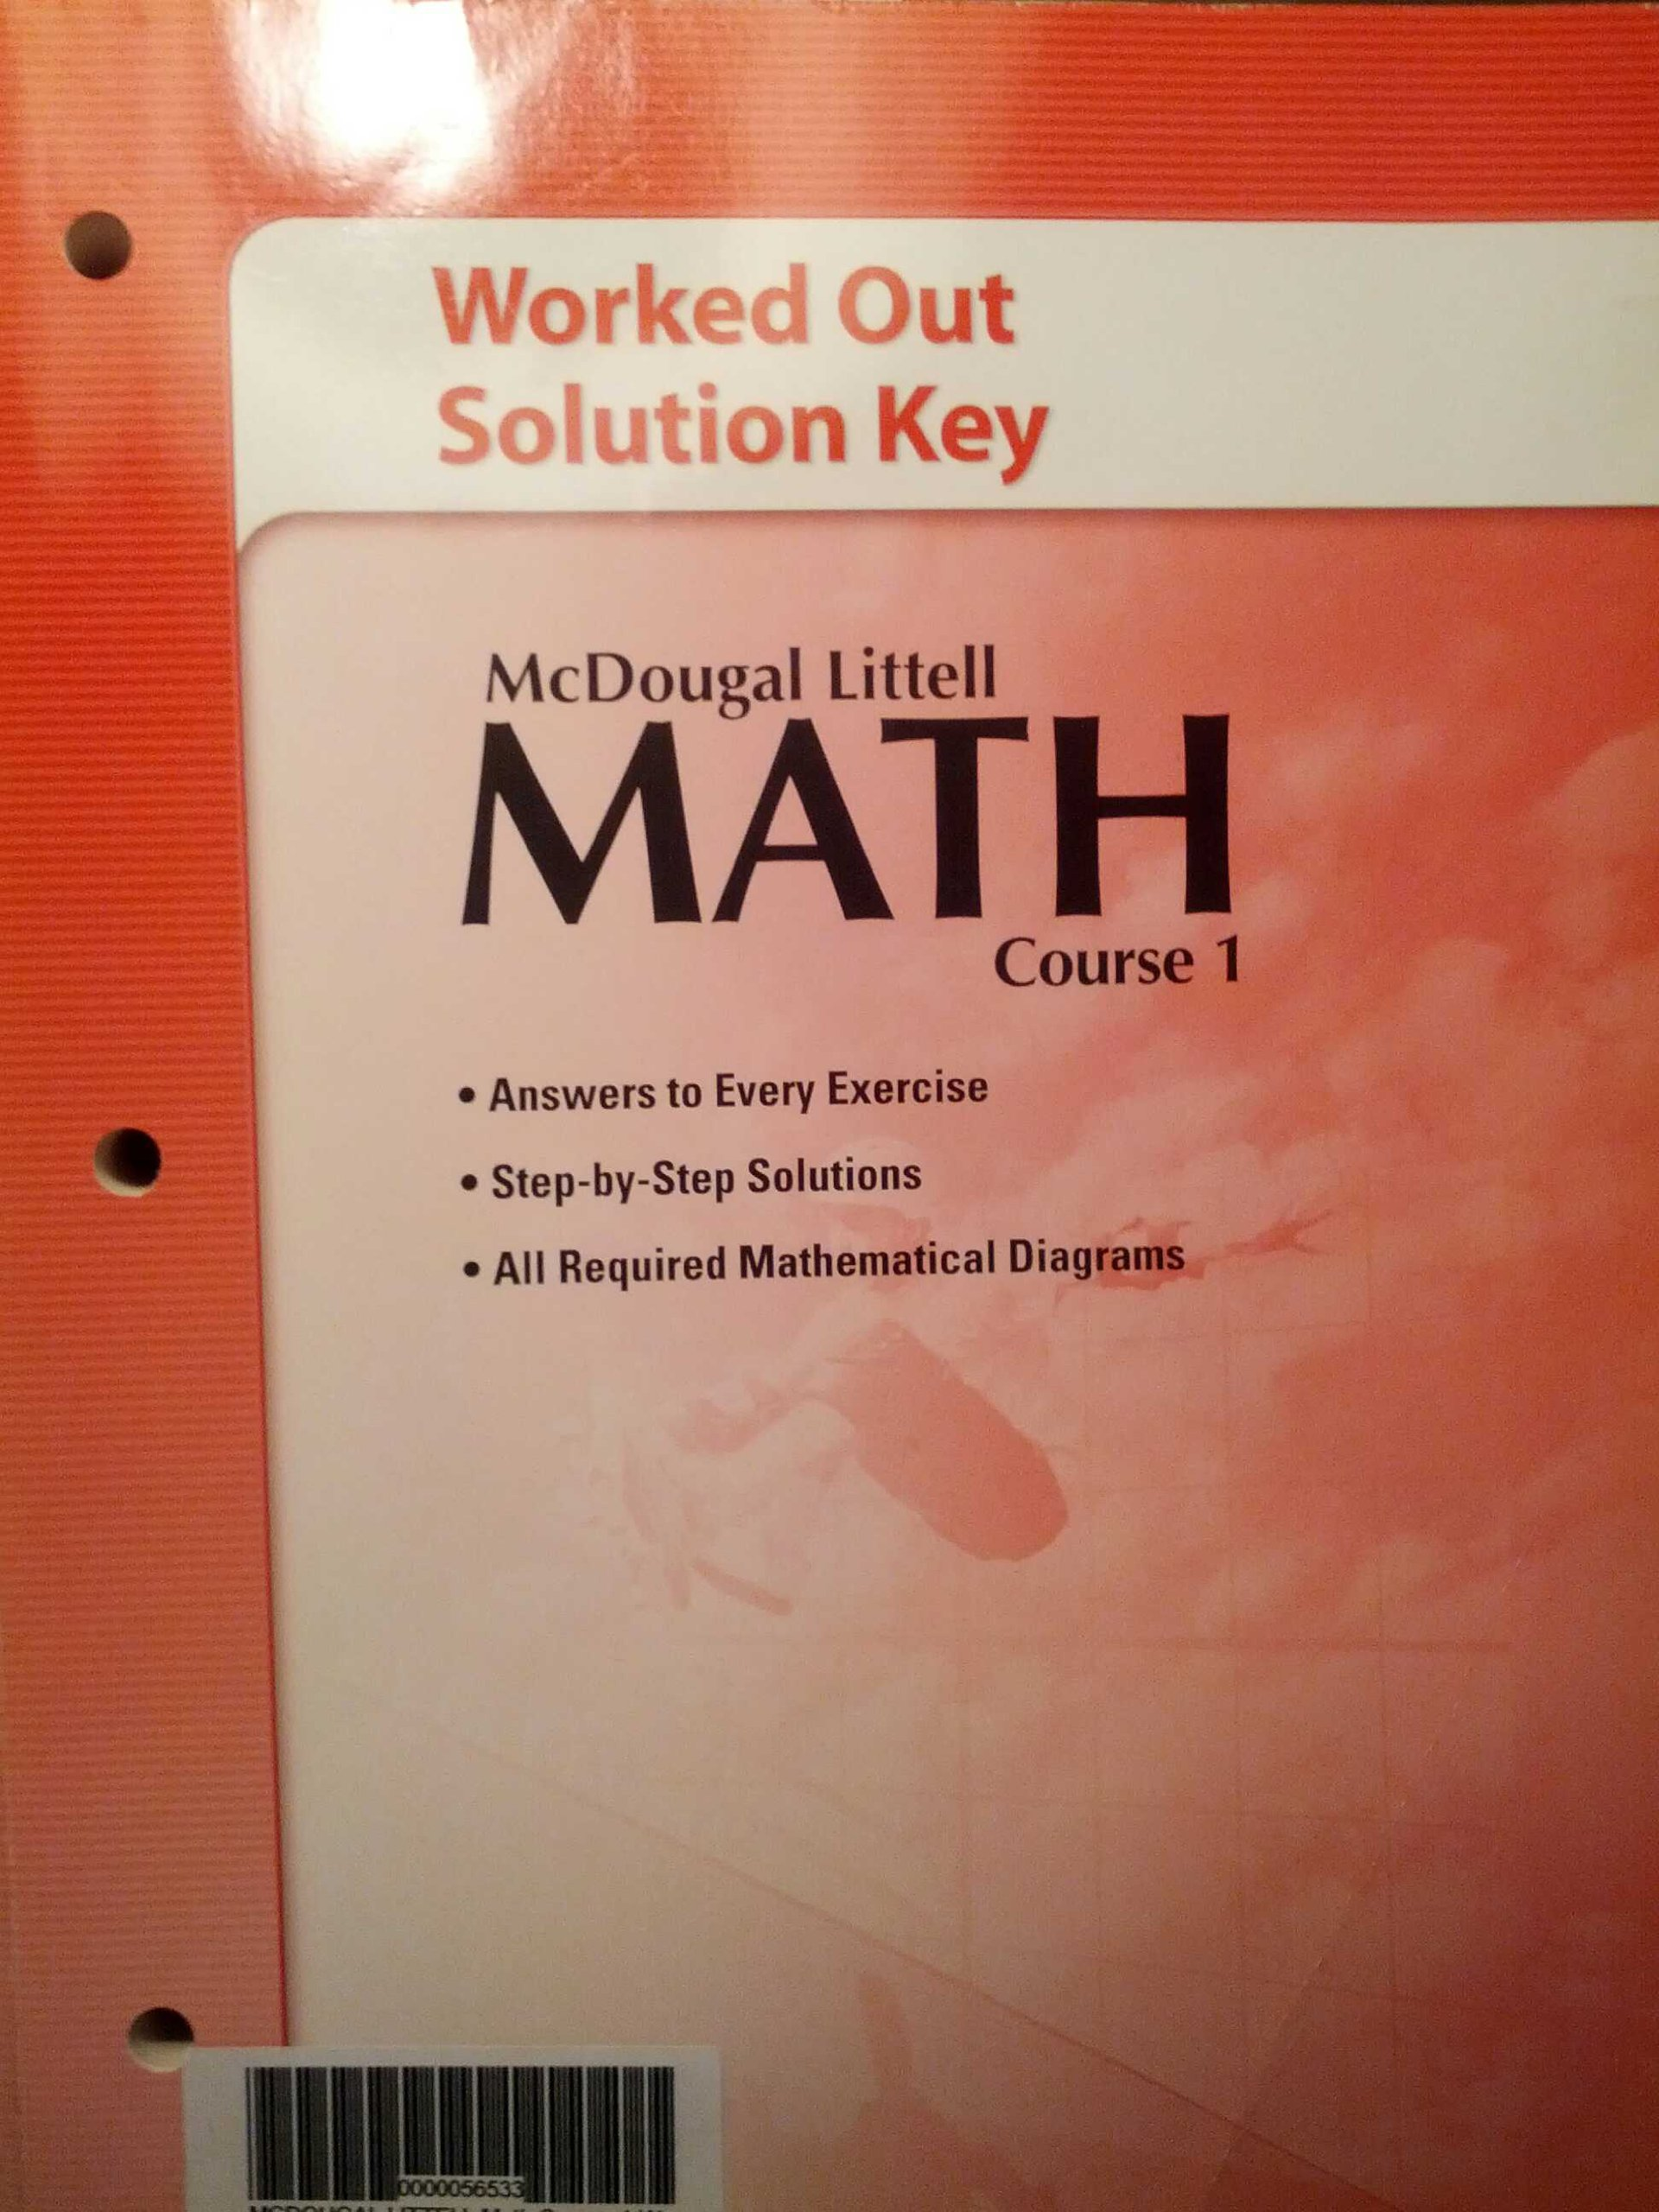 Download McDougal Littell Math Course 1: Worked-Out Solution Key PDF